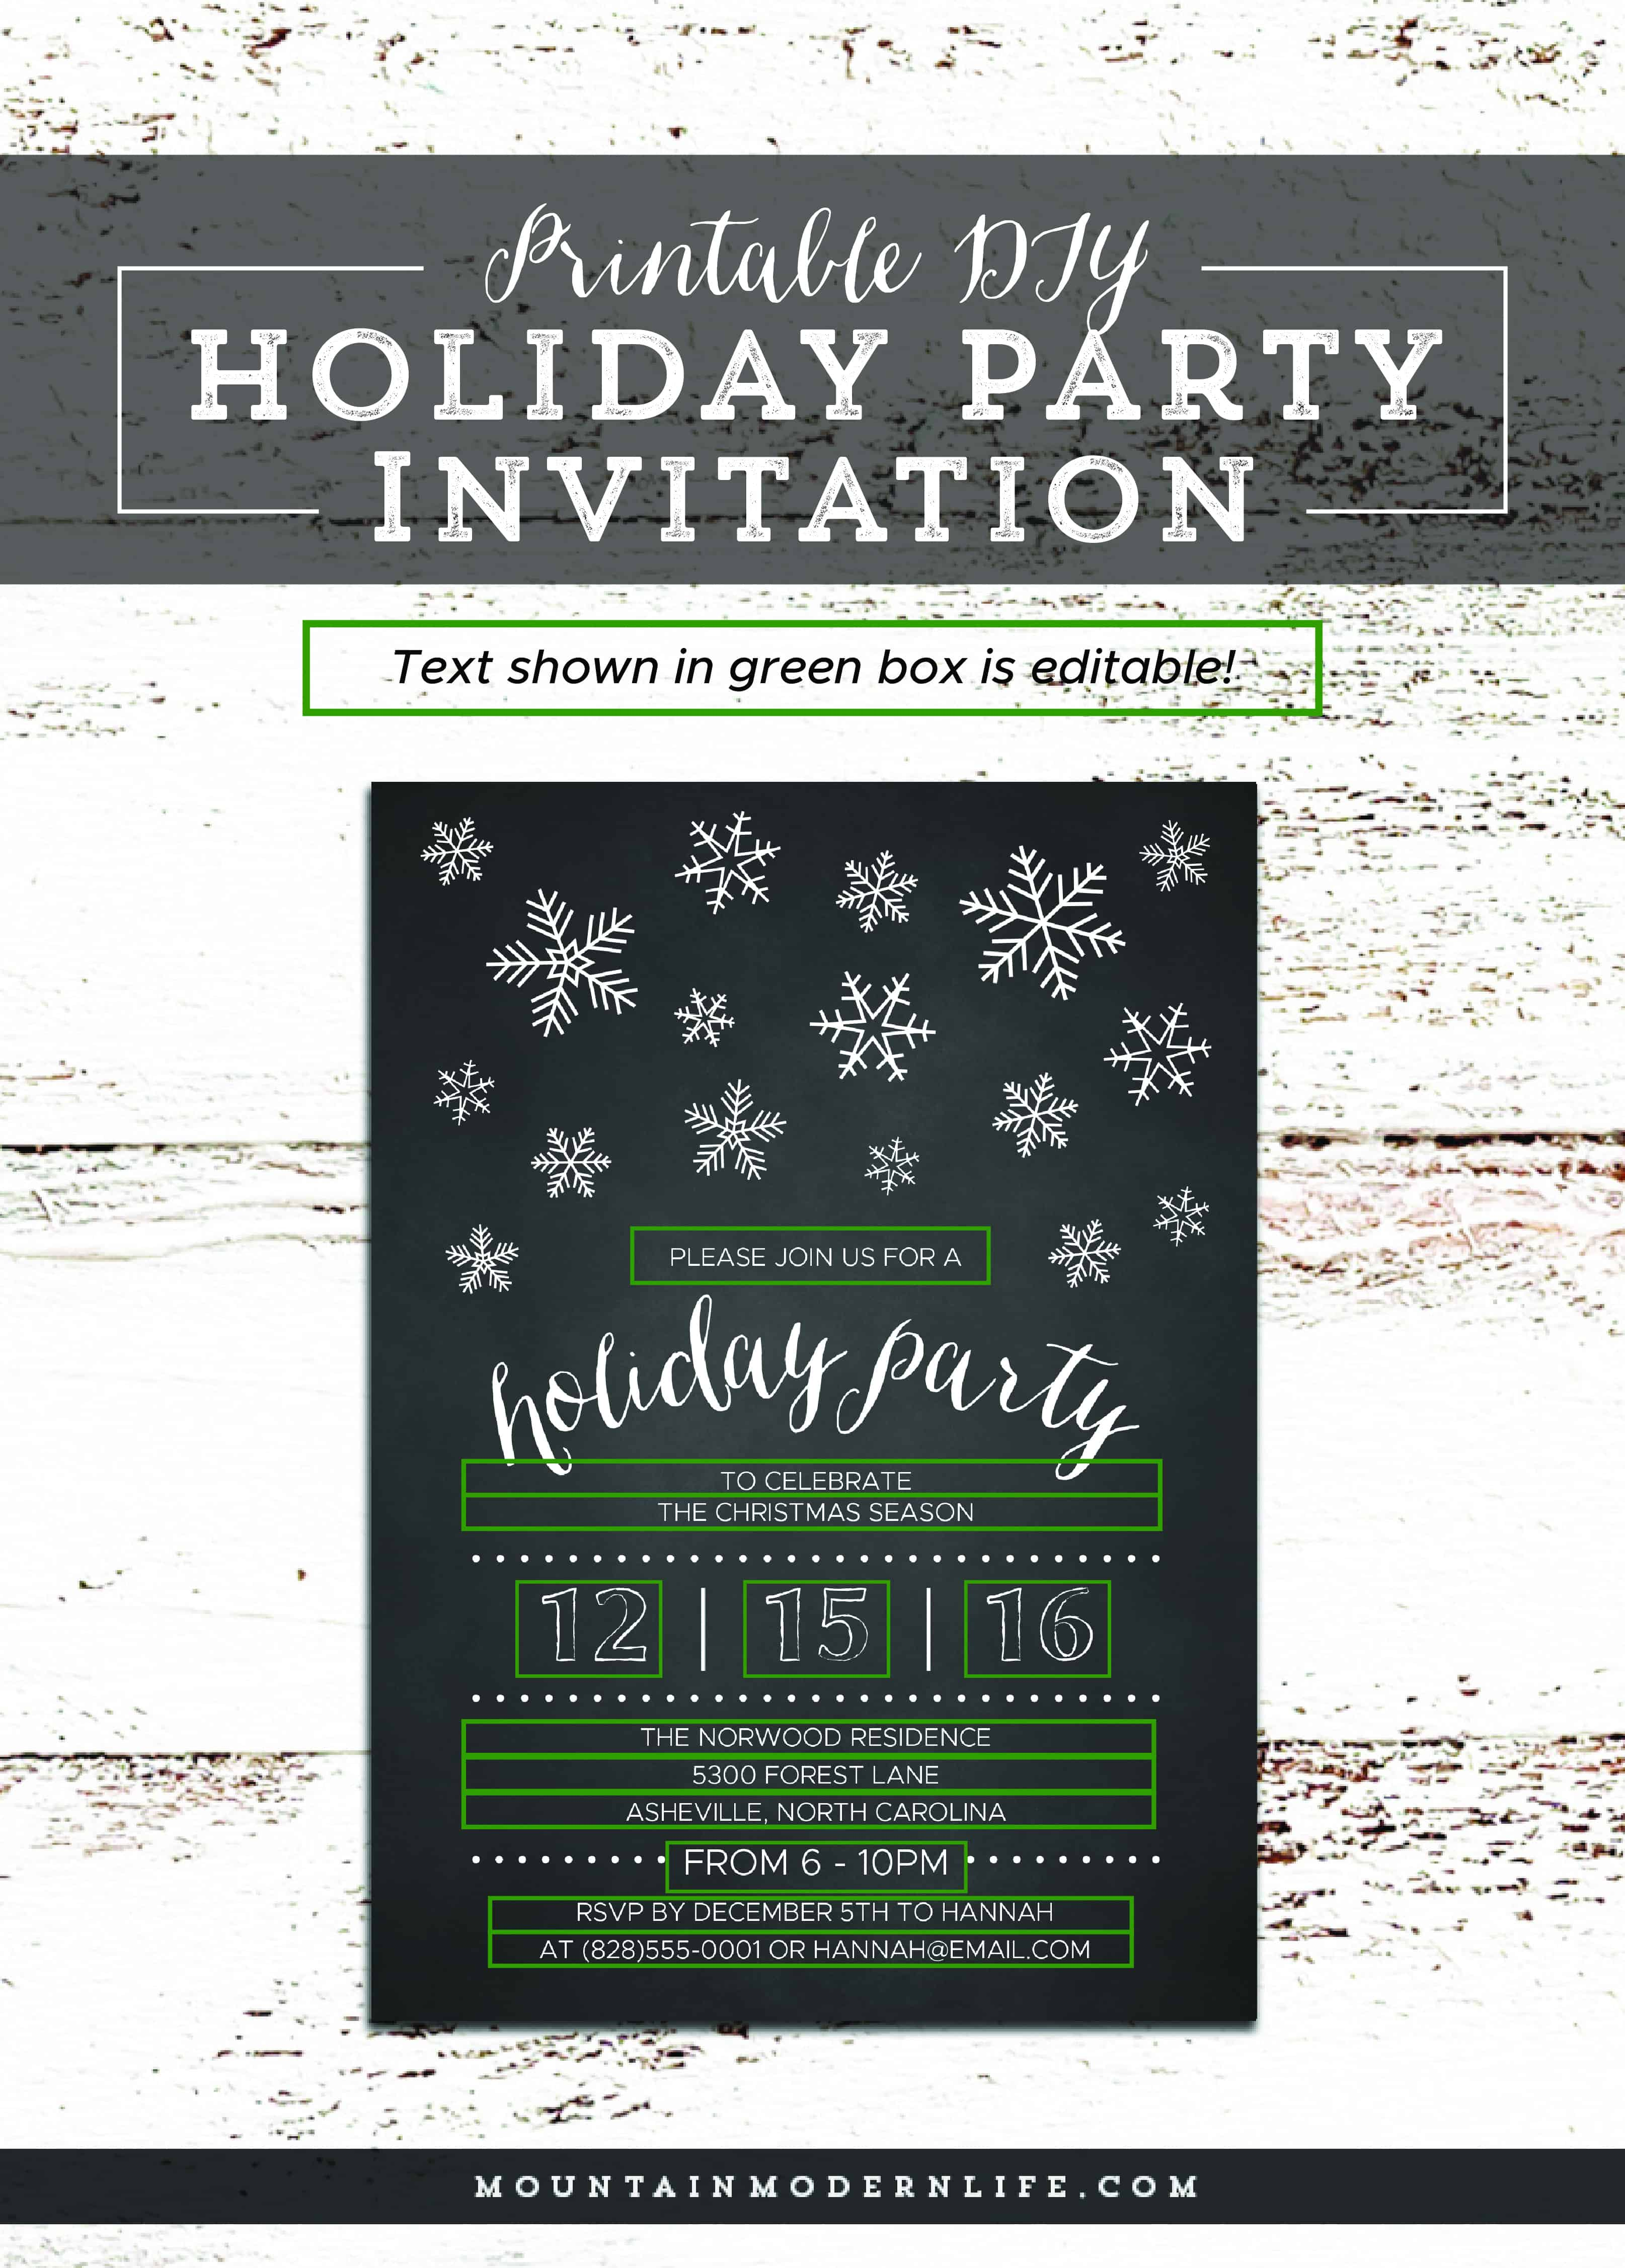 holiday party invitation template - Picture Ideas References